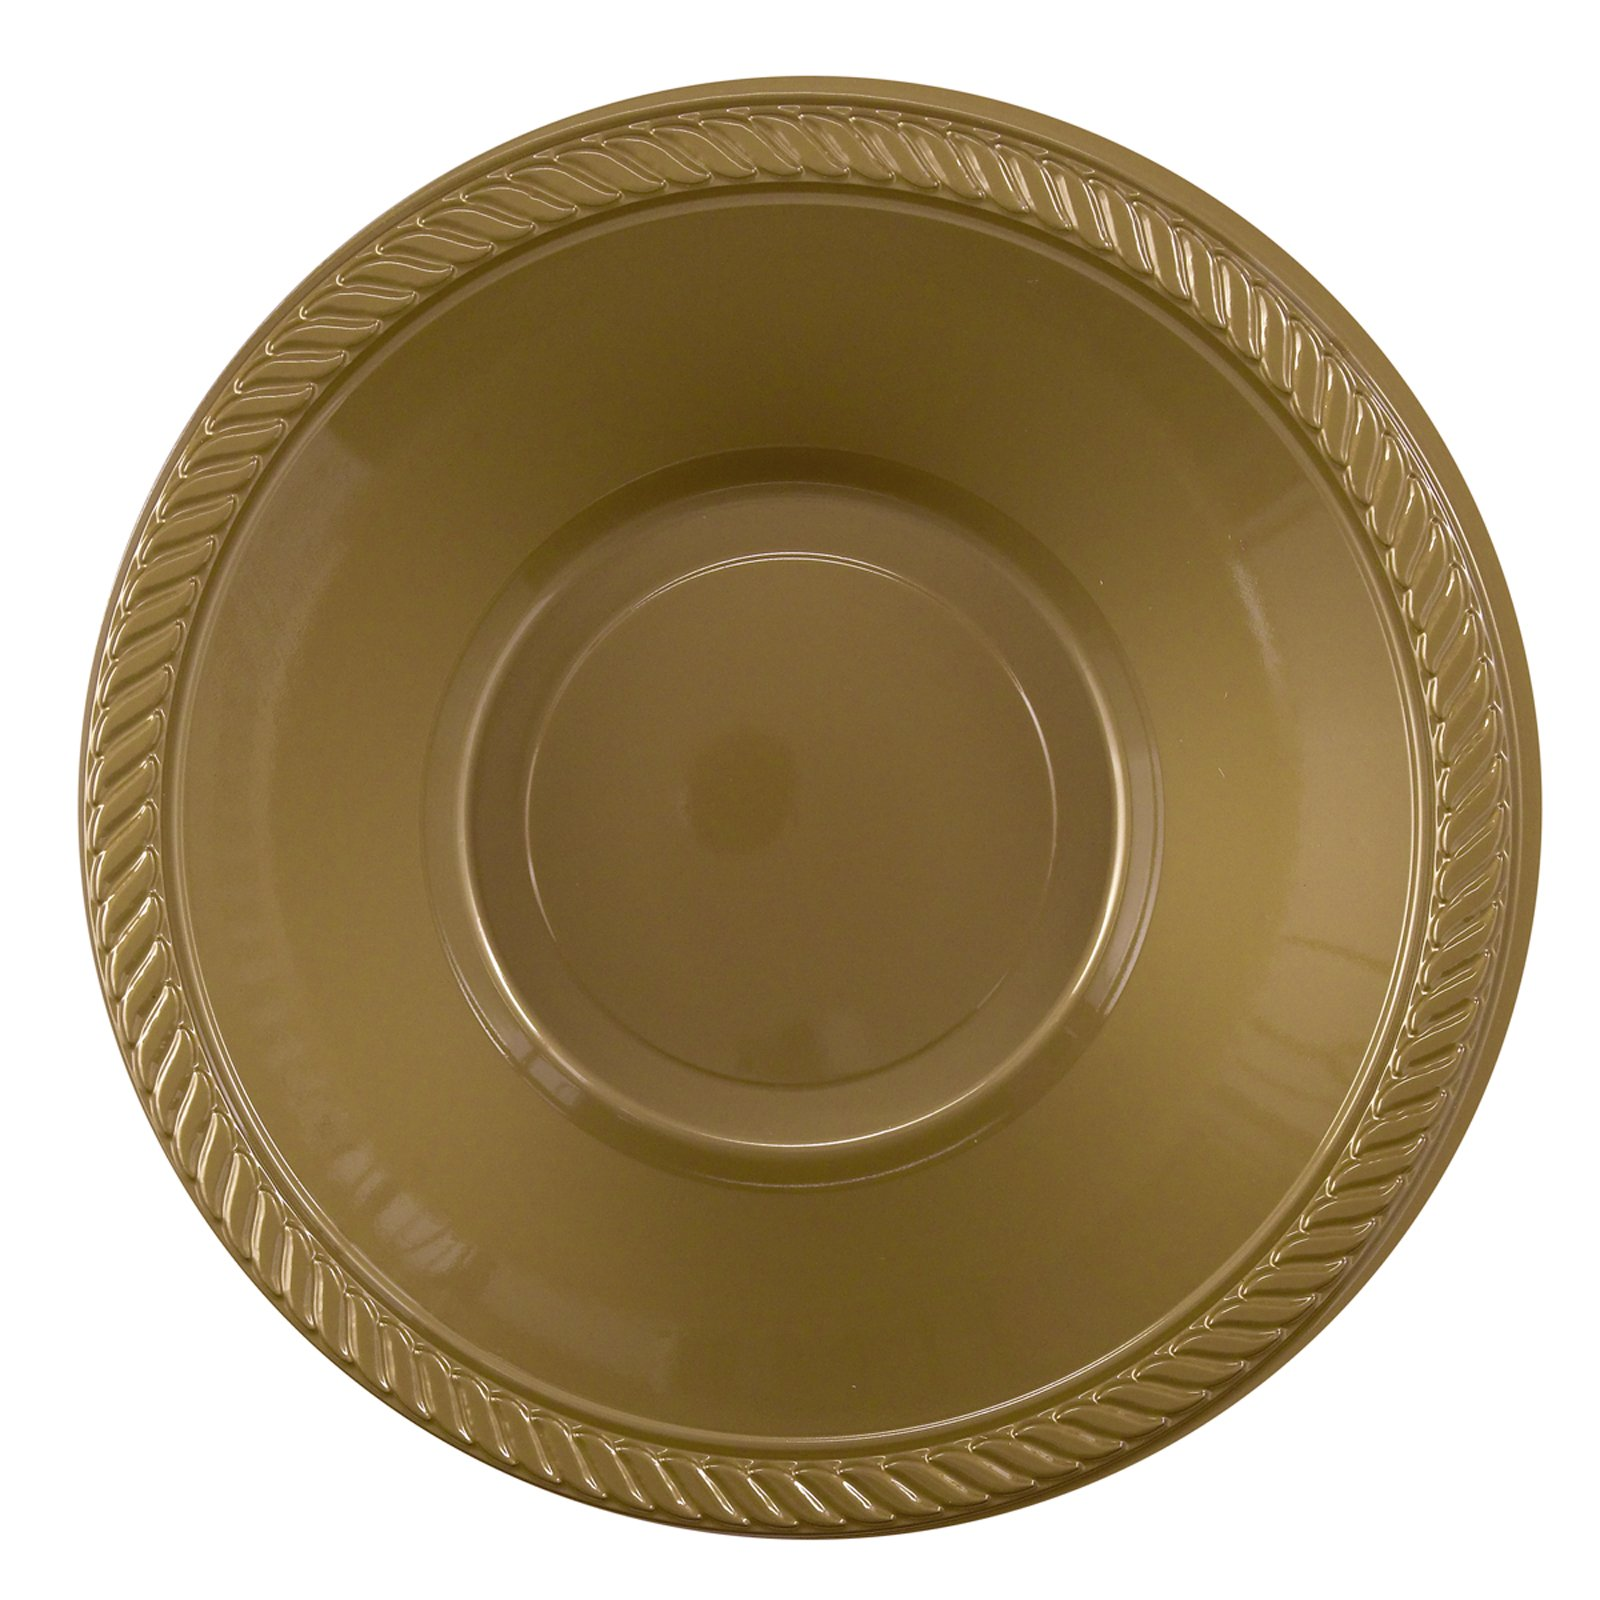 Gold Plastic Bowls (20 count)